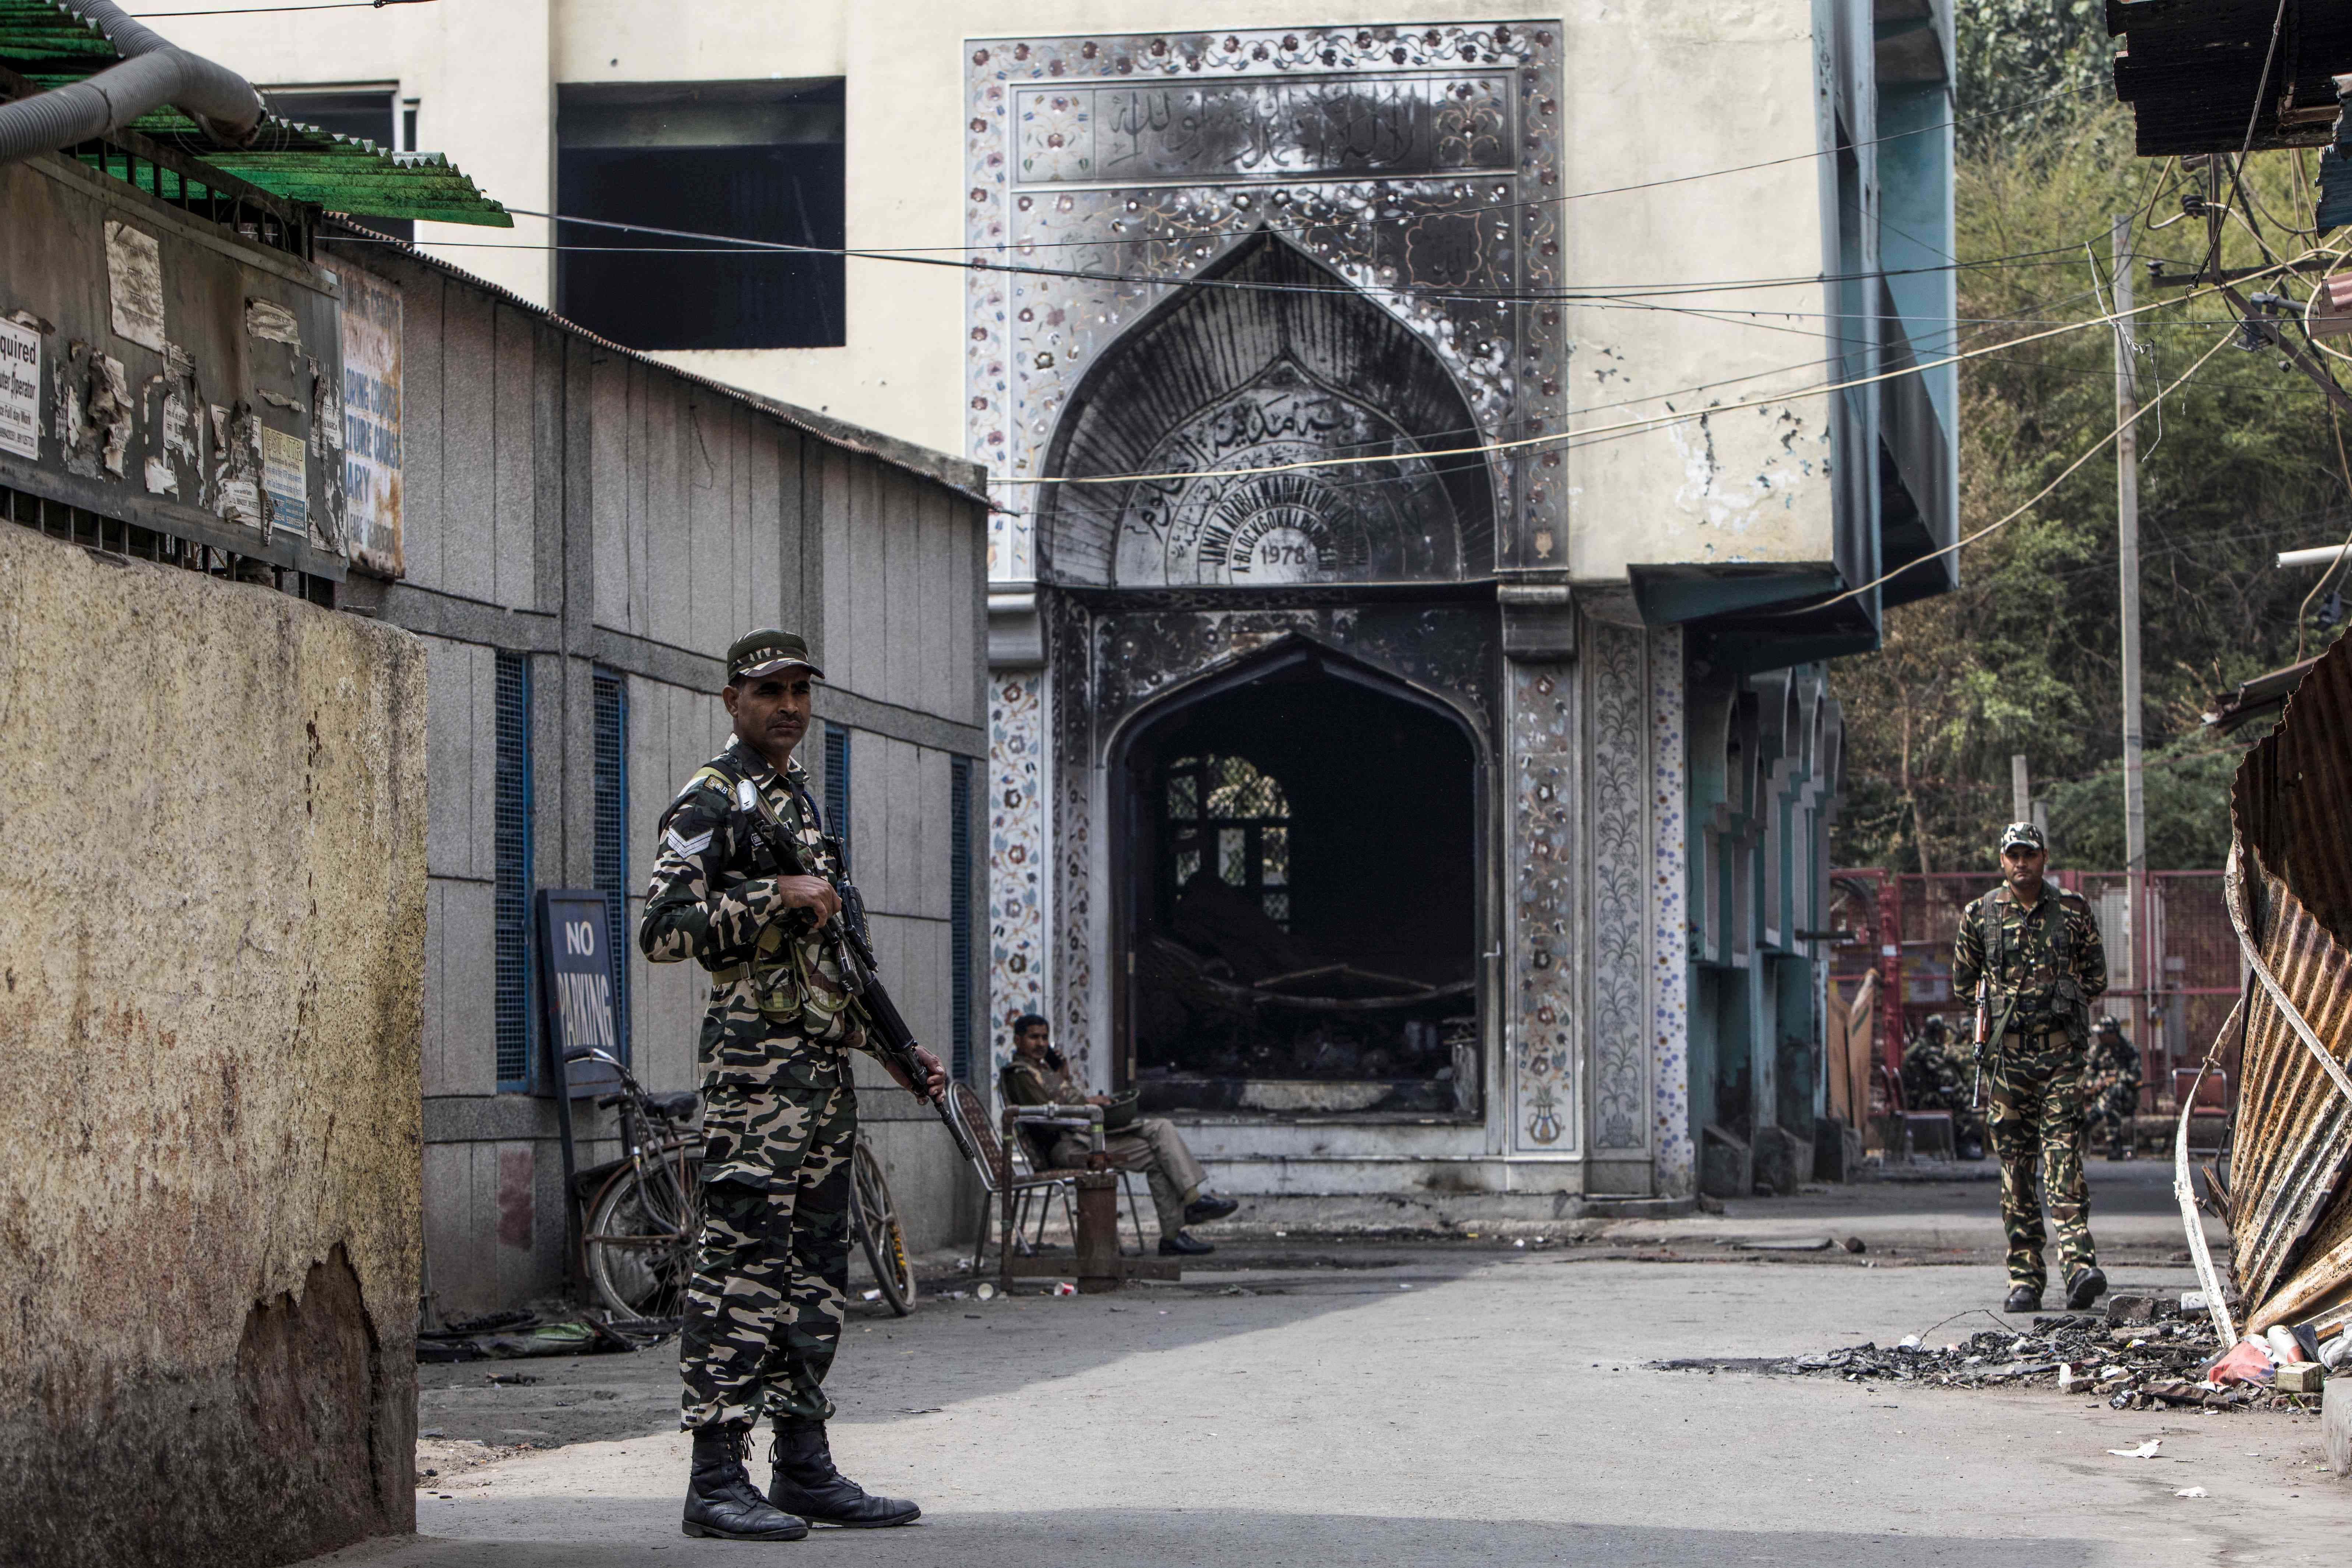 Security personnel stand guard outside a burnt-out mosque in Mustafabad in New Delhi on February 28. — AFP